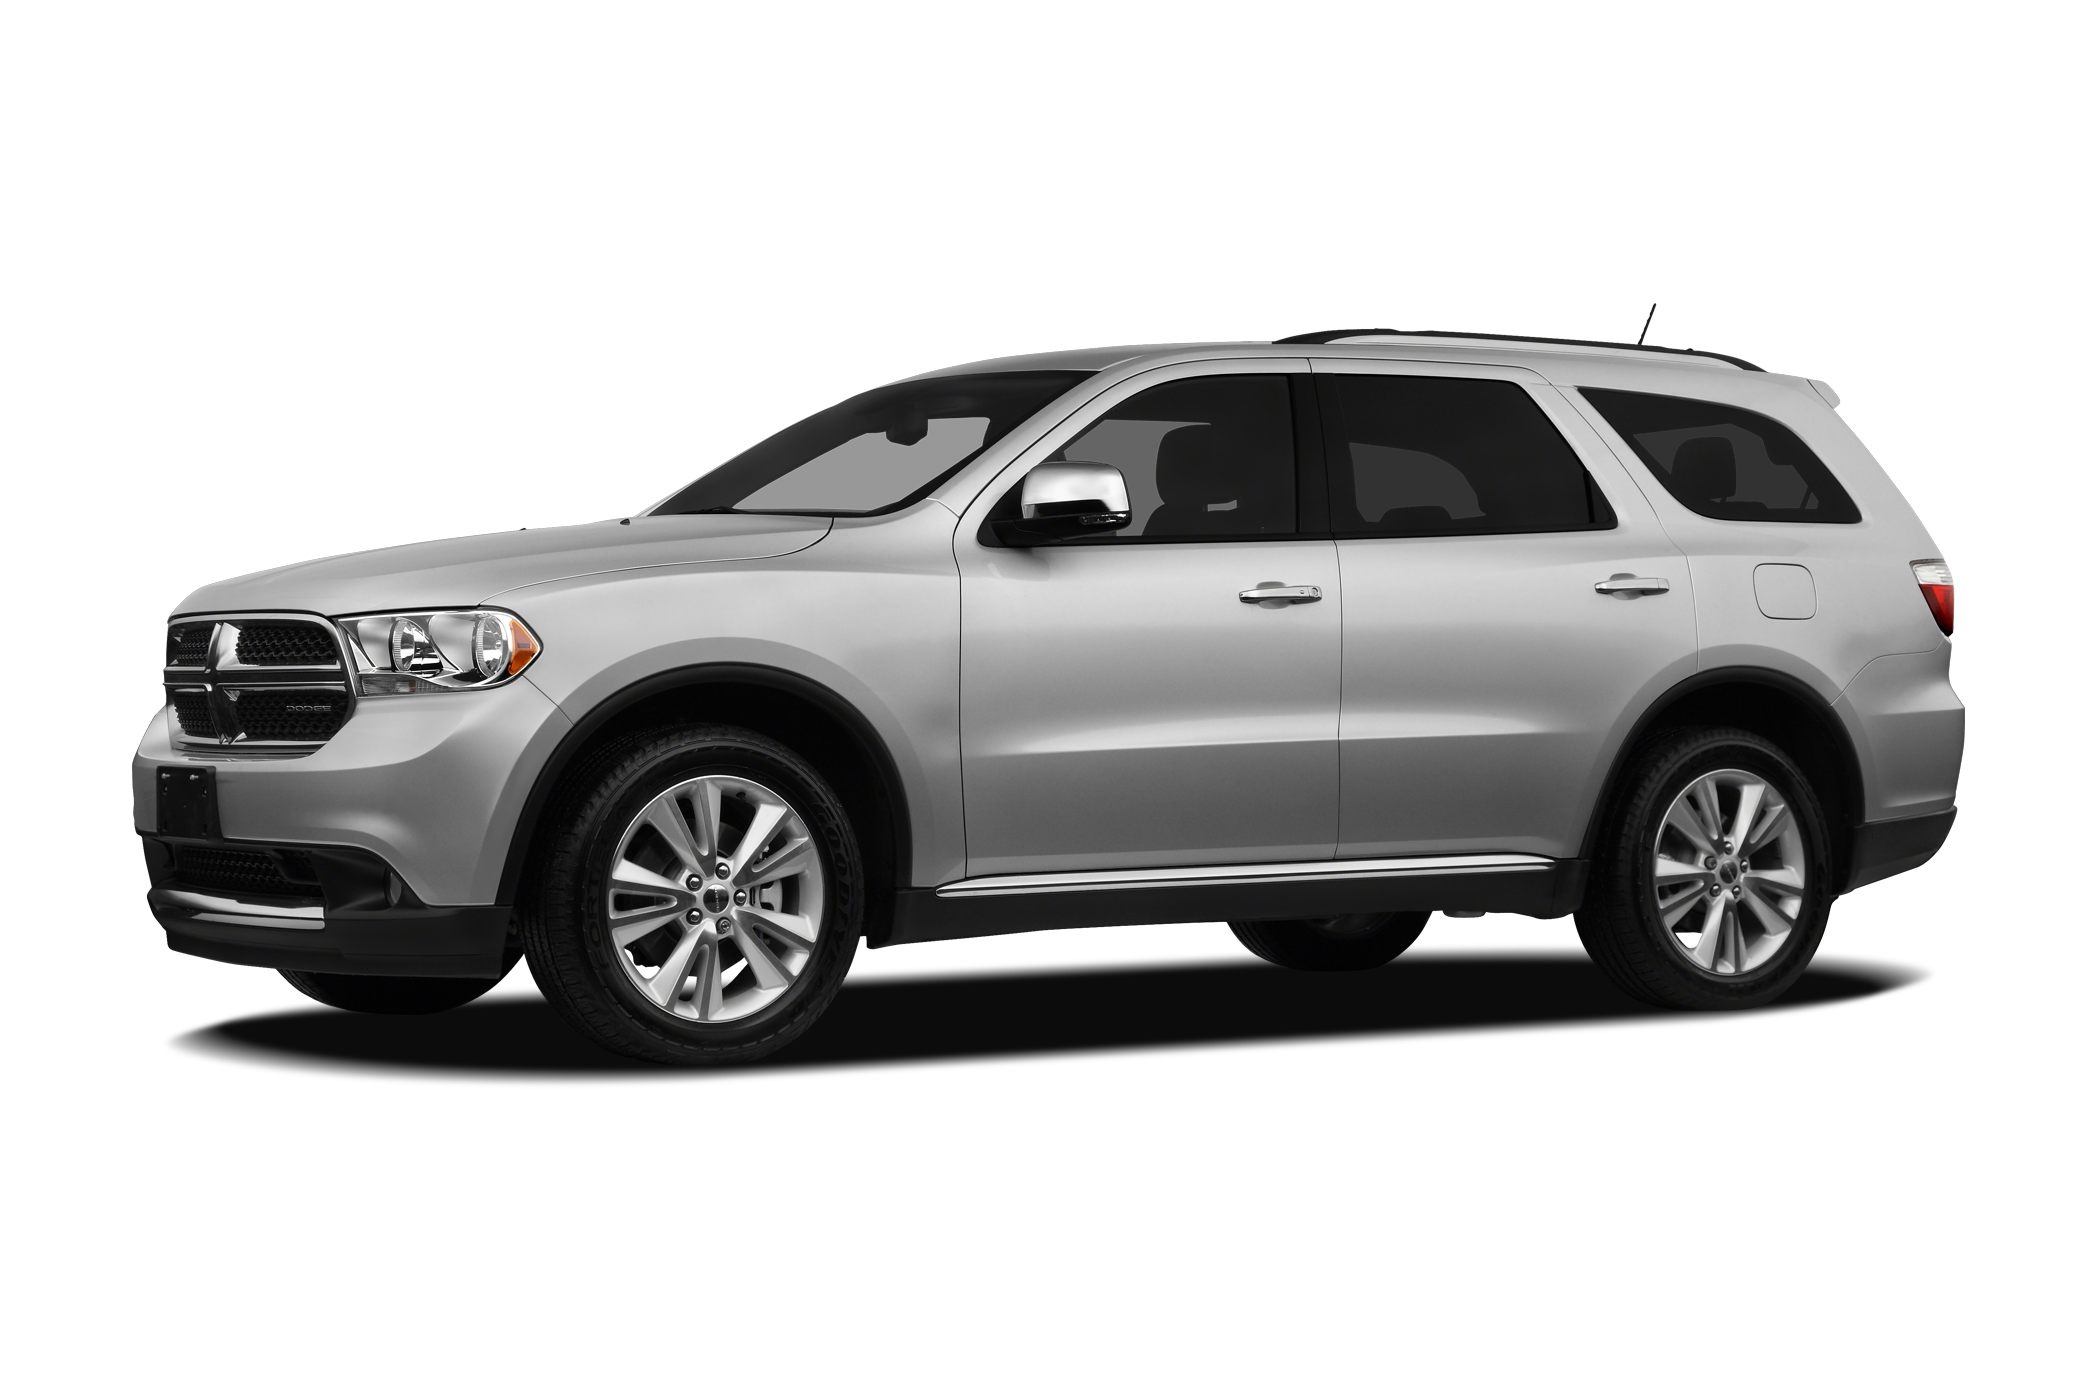 2011 Dodge Durango Crew SUV for sale in San Antonio for $21,981 with 44,607 miles.